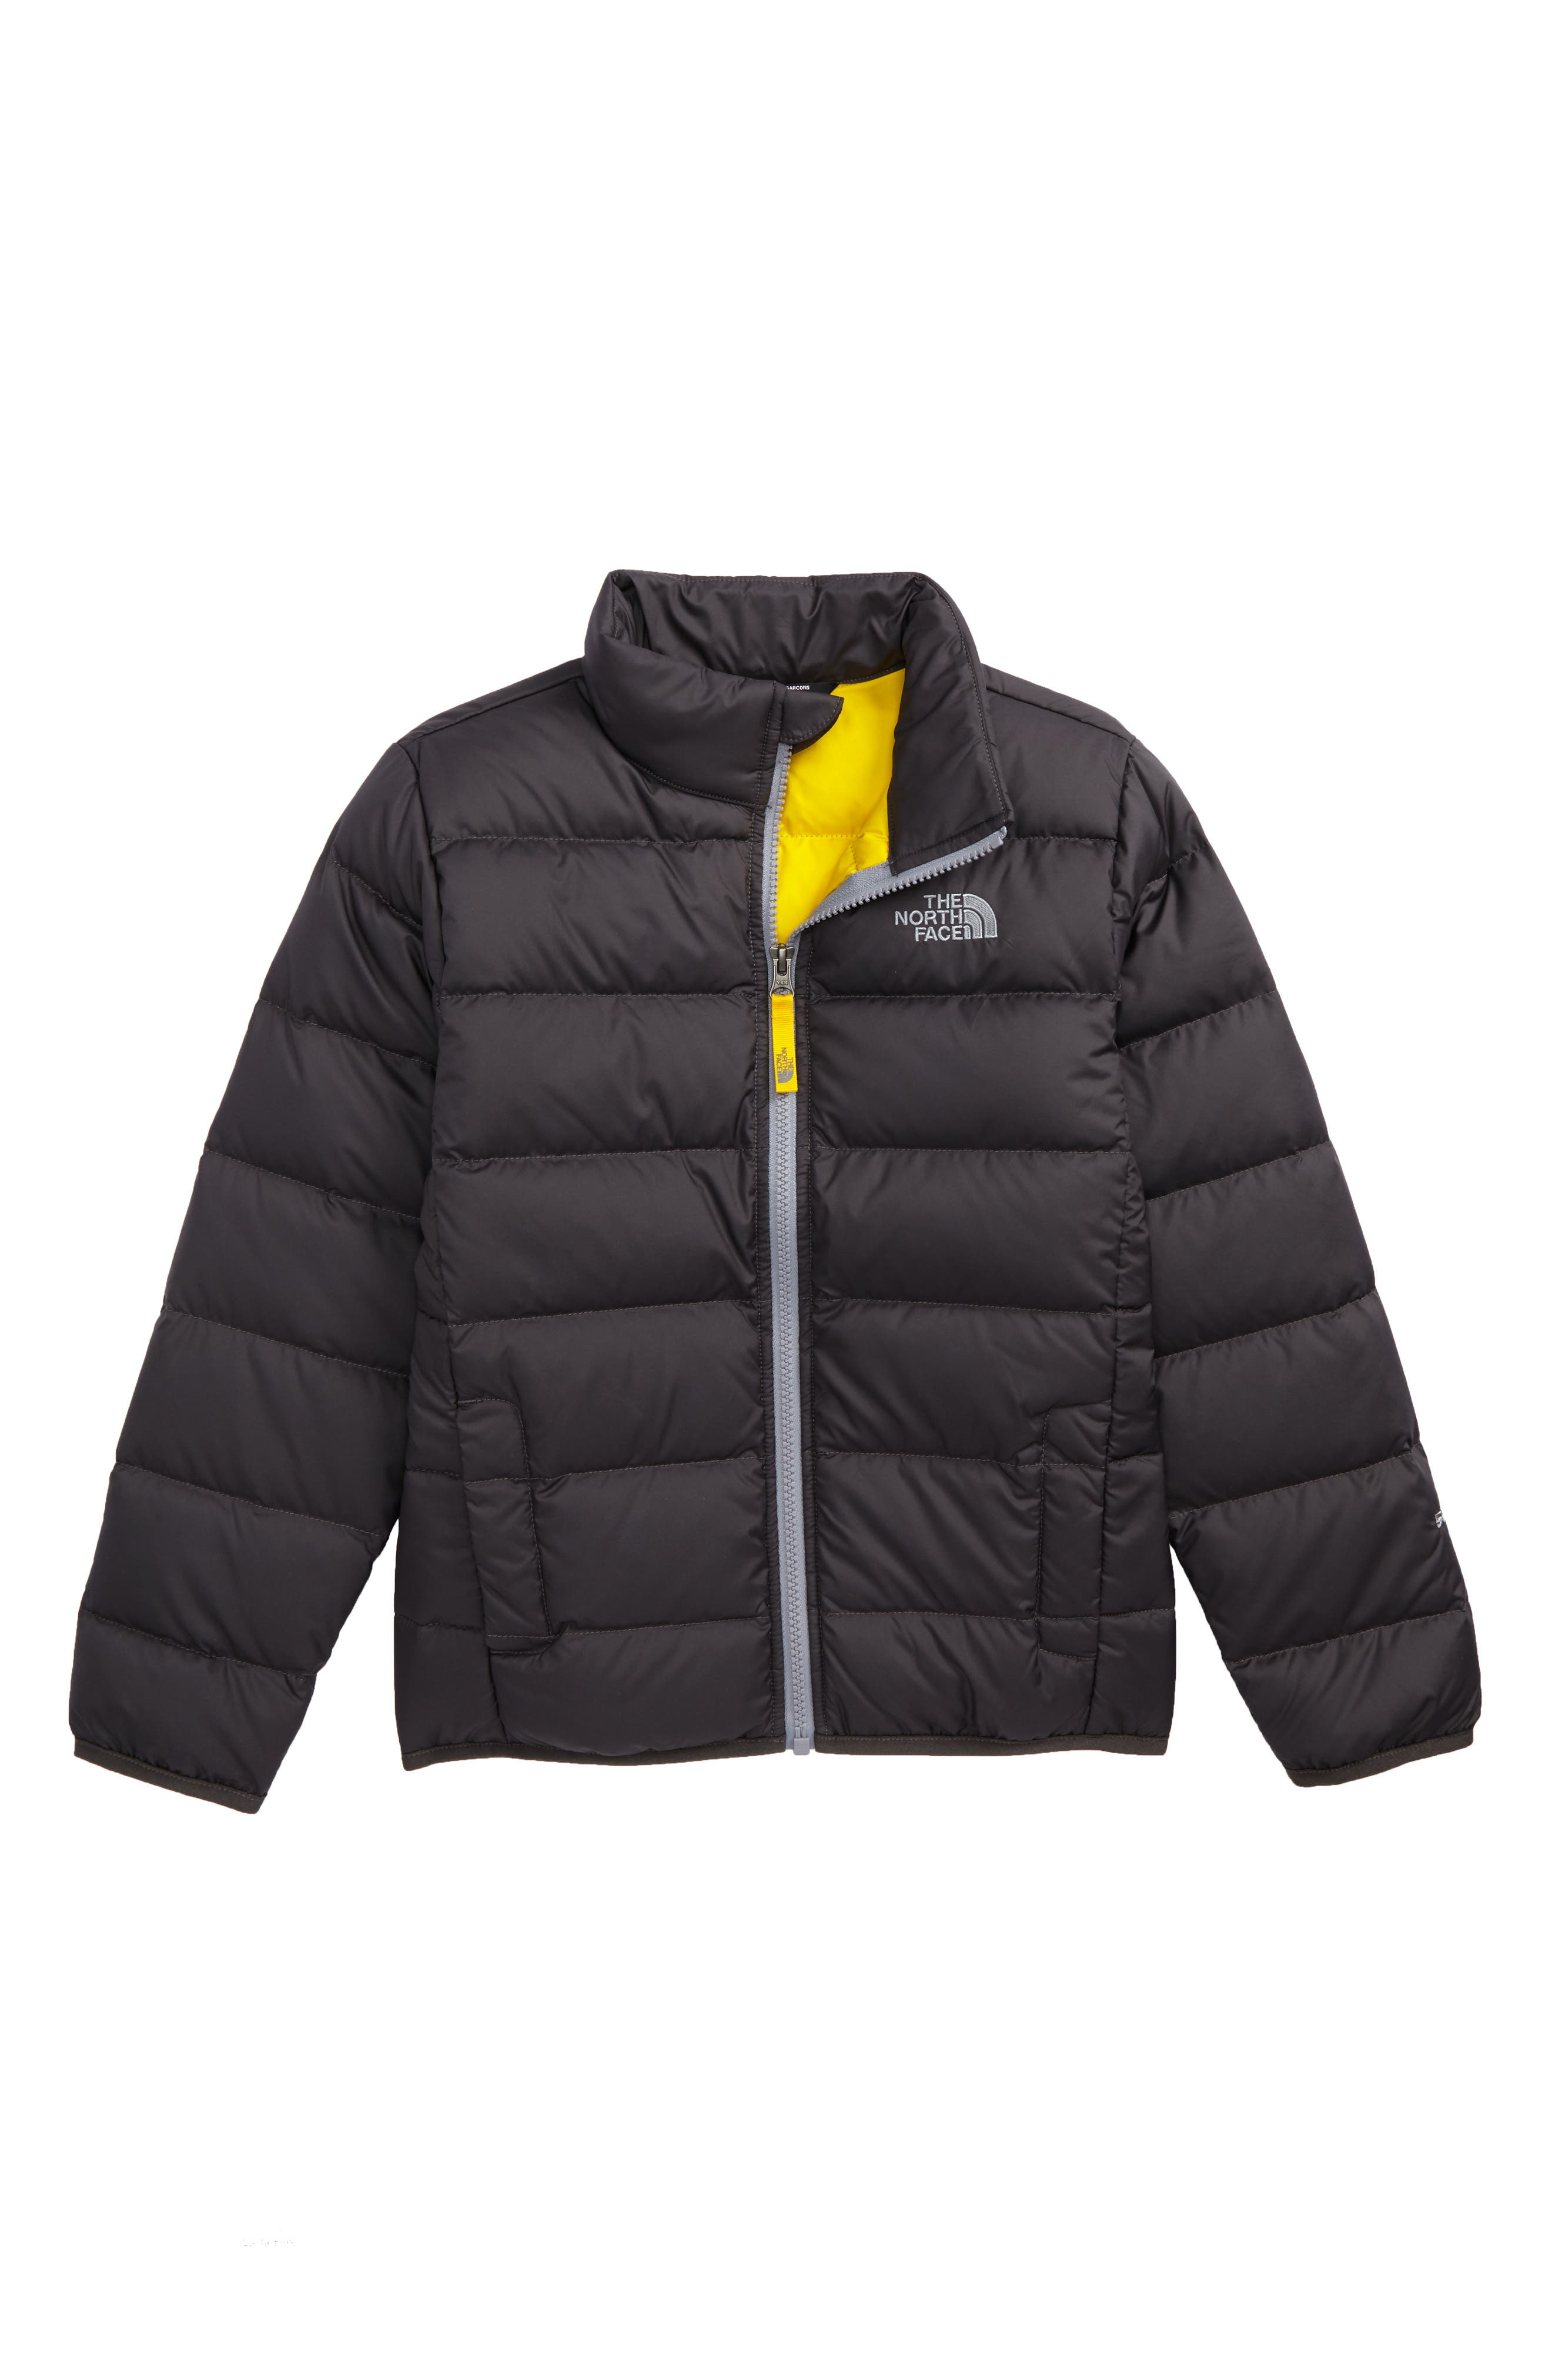 Andes Water Repellent 550-Fill Power Down Jacket,                             Main thumbnail 1, color,                             Graphite Grey/ Canary Yellow